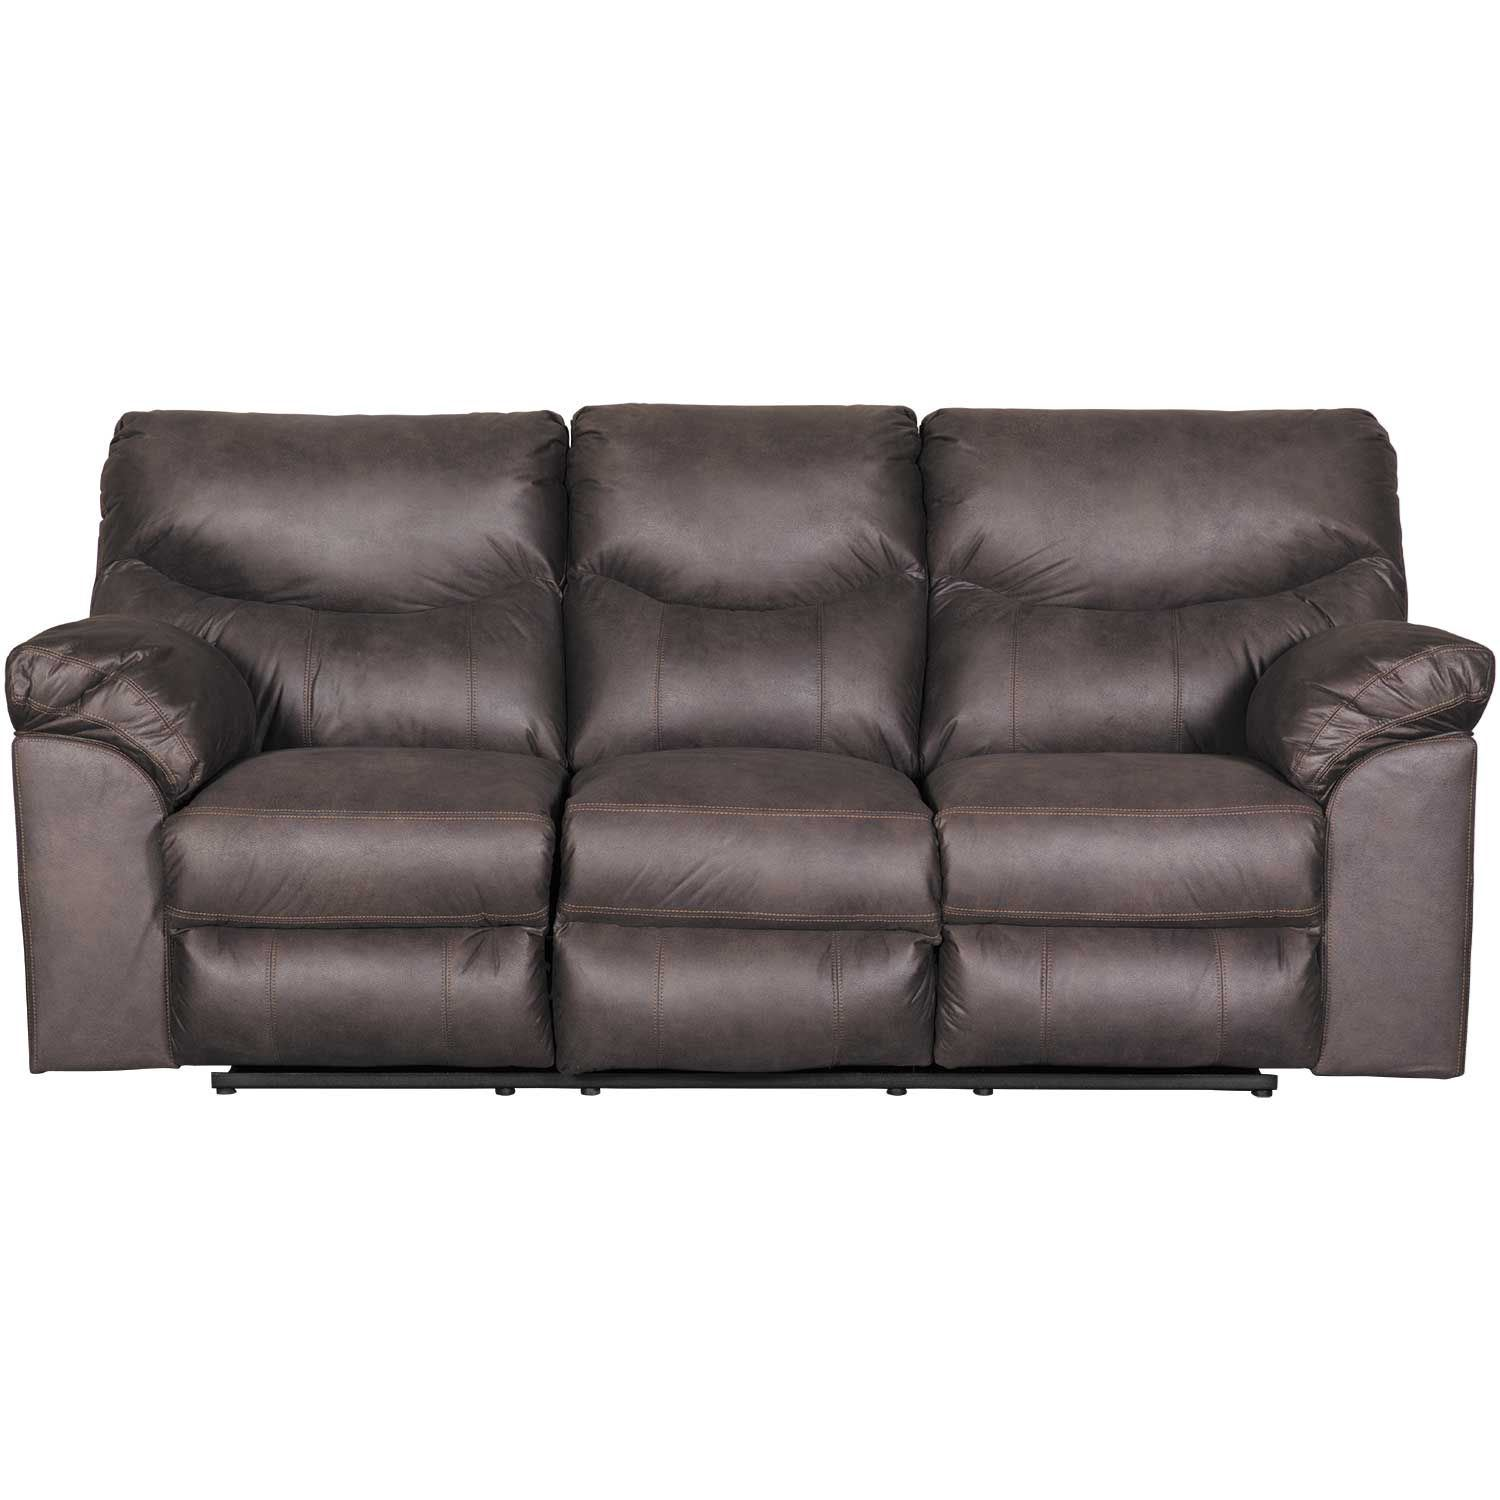 Boxberg Teak Reclining Sofa 3380388 Ashley Furniture Afw Com